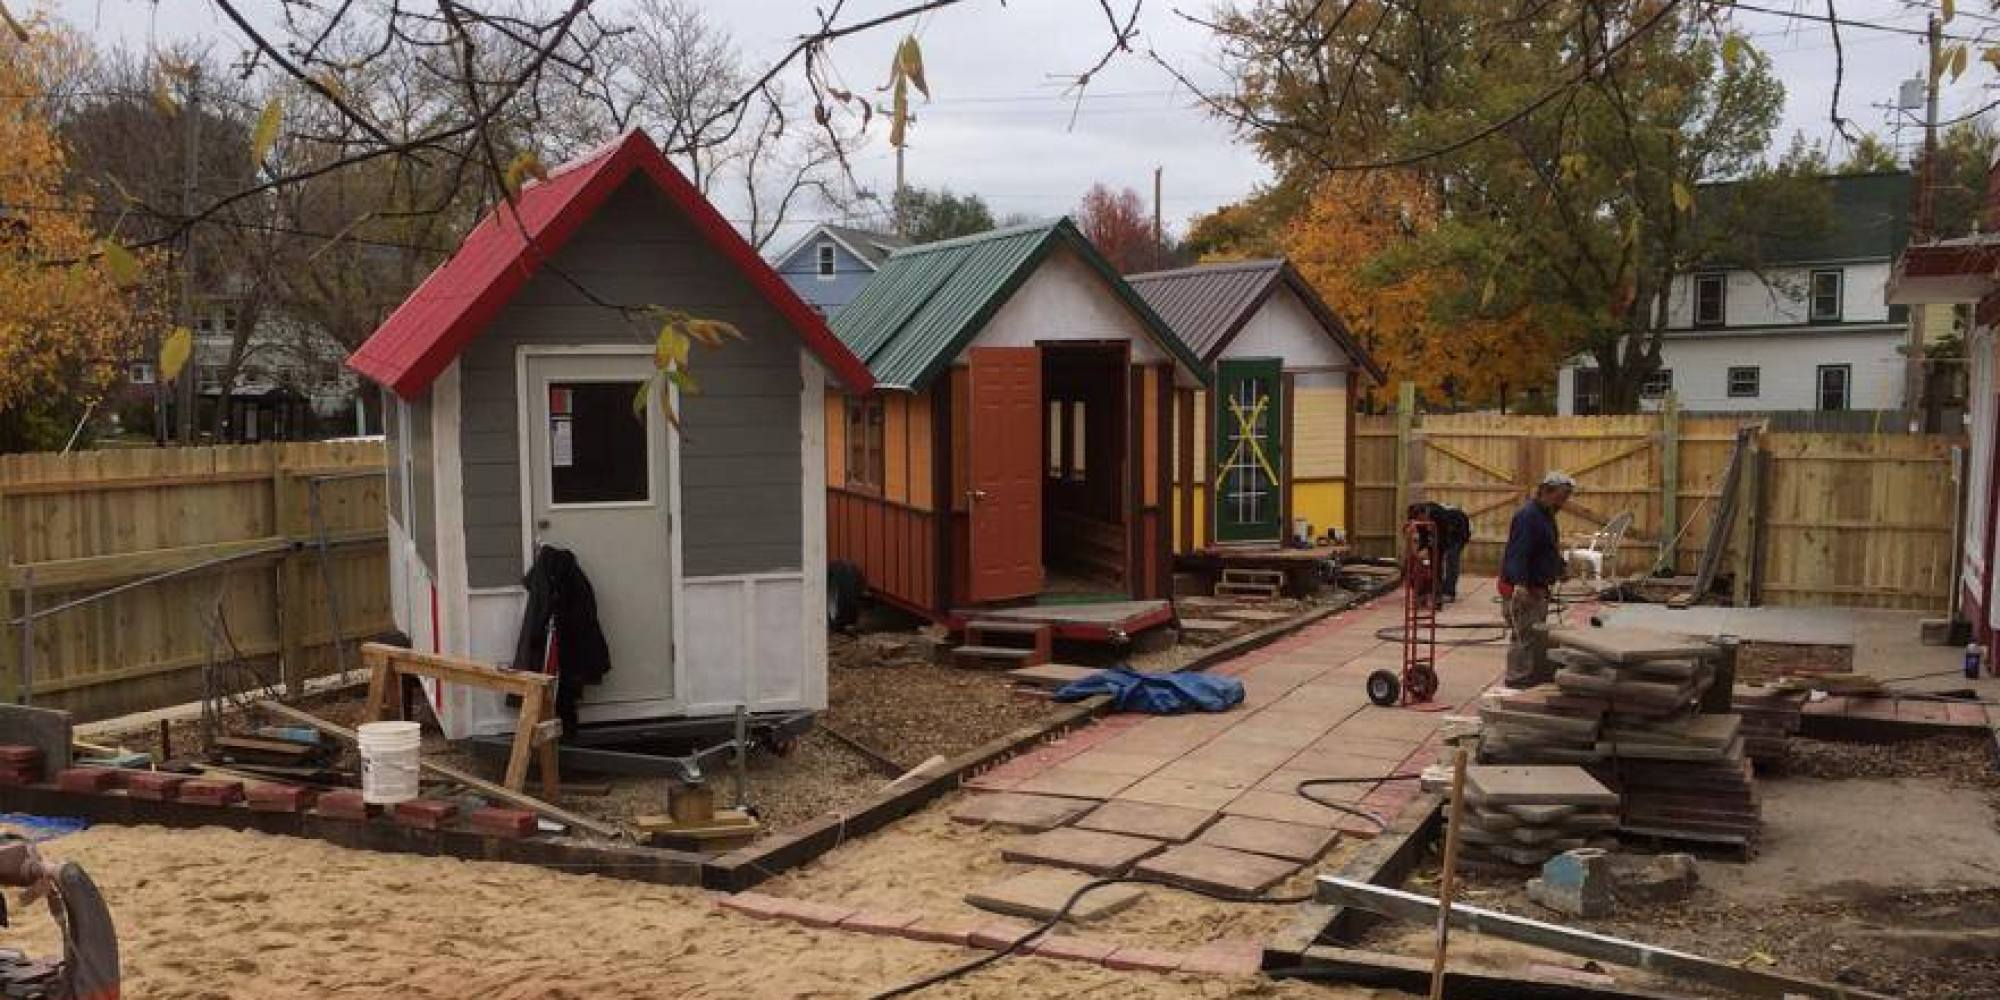 Astounding Tiny Houses For Homeless People Put Roofs Over Heads In Time For Largest Home Design Picture Inspirations Pitcheantrous